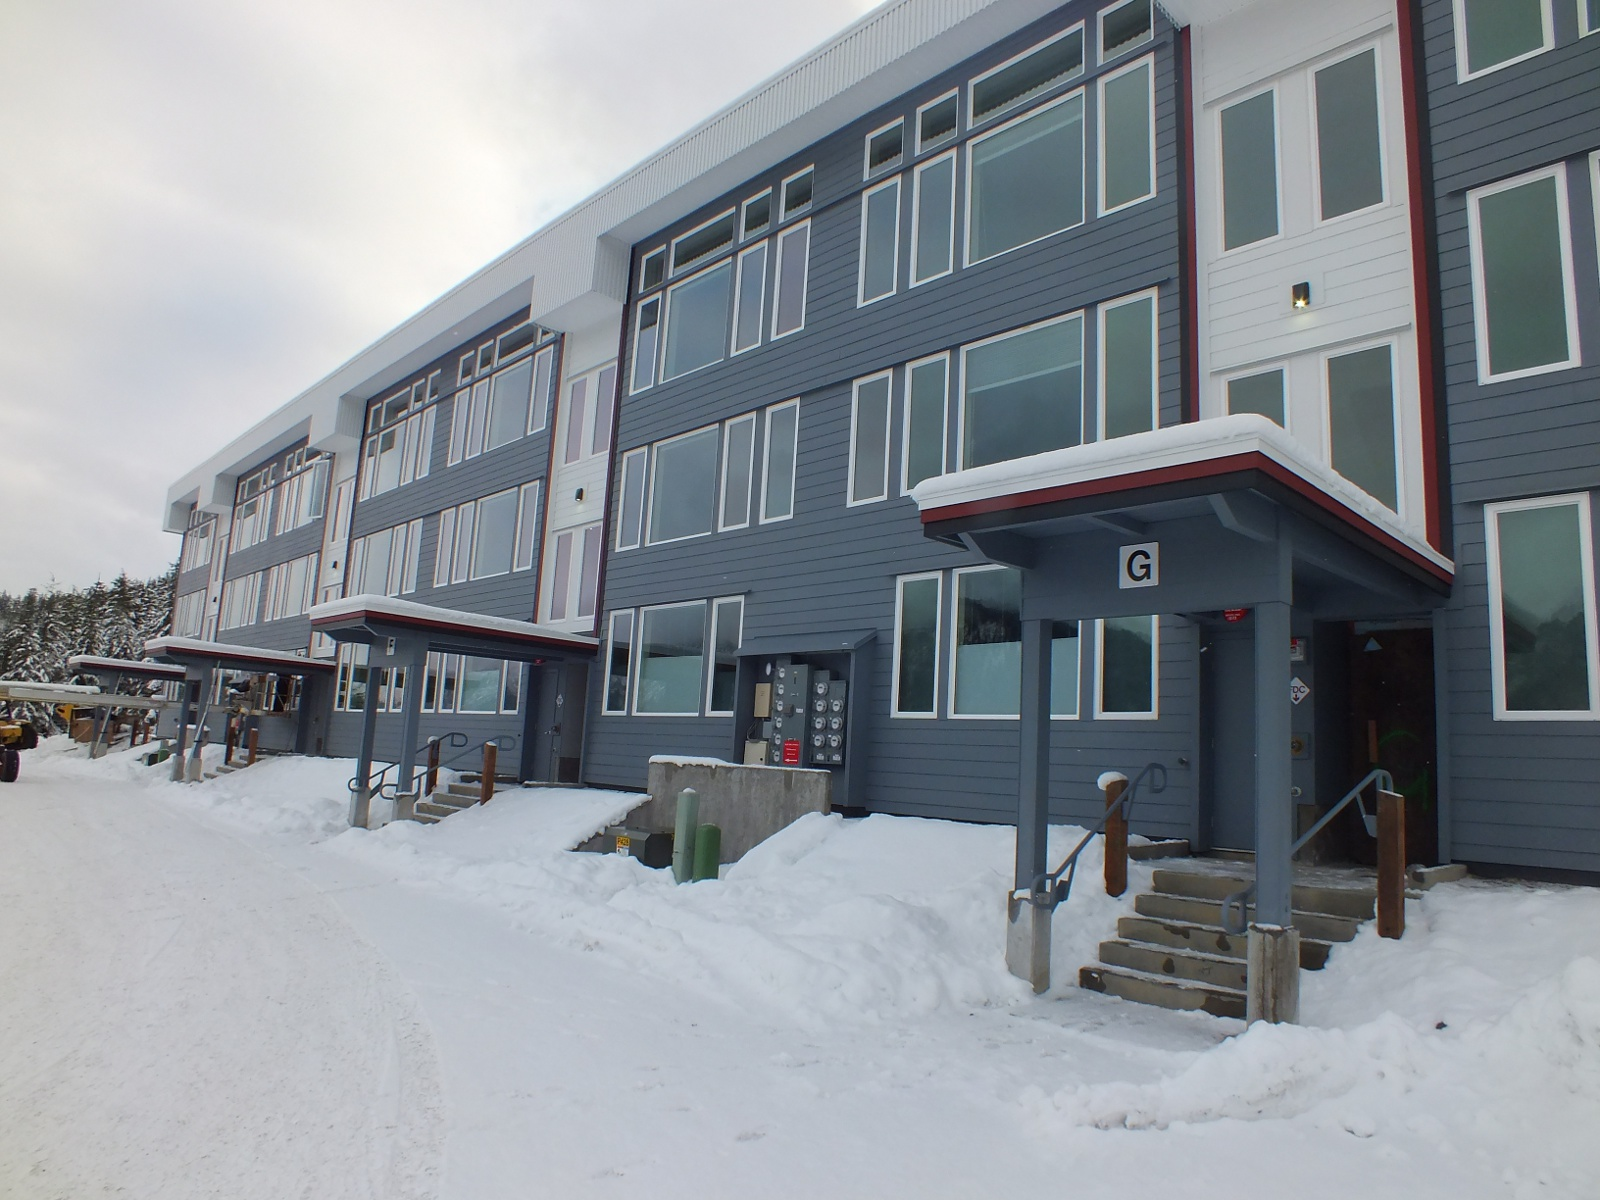 Coogan Construction's 24-unit Island Hills apartment complex in West Juneau is nearing completion. The city is hosting a forum on Monday for those interested in building more housing in town. (Photo by Casey Kelly/KTOO)